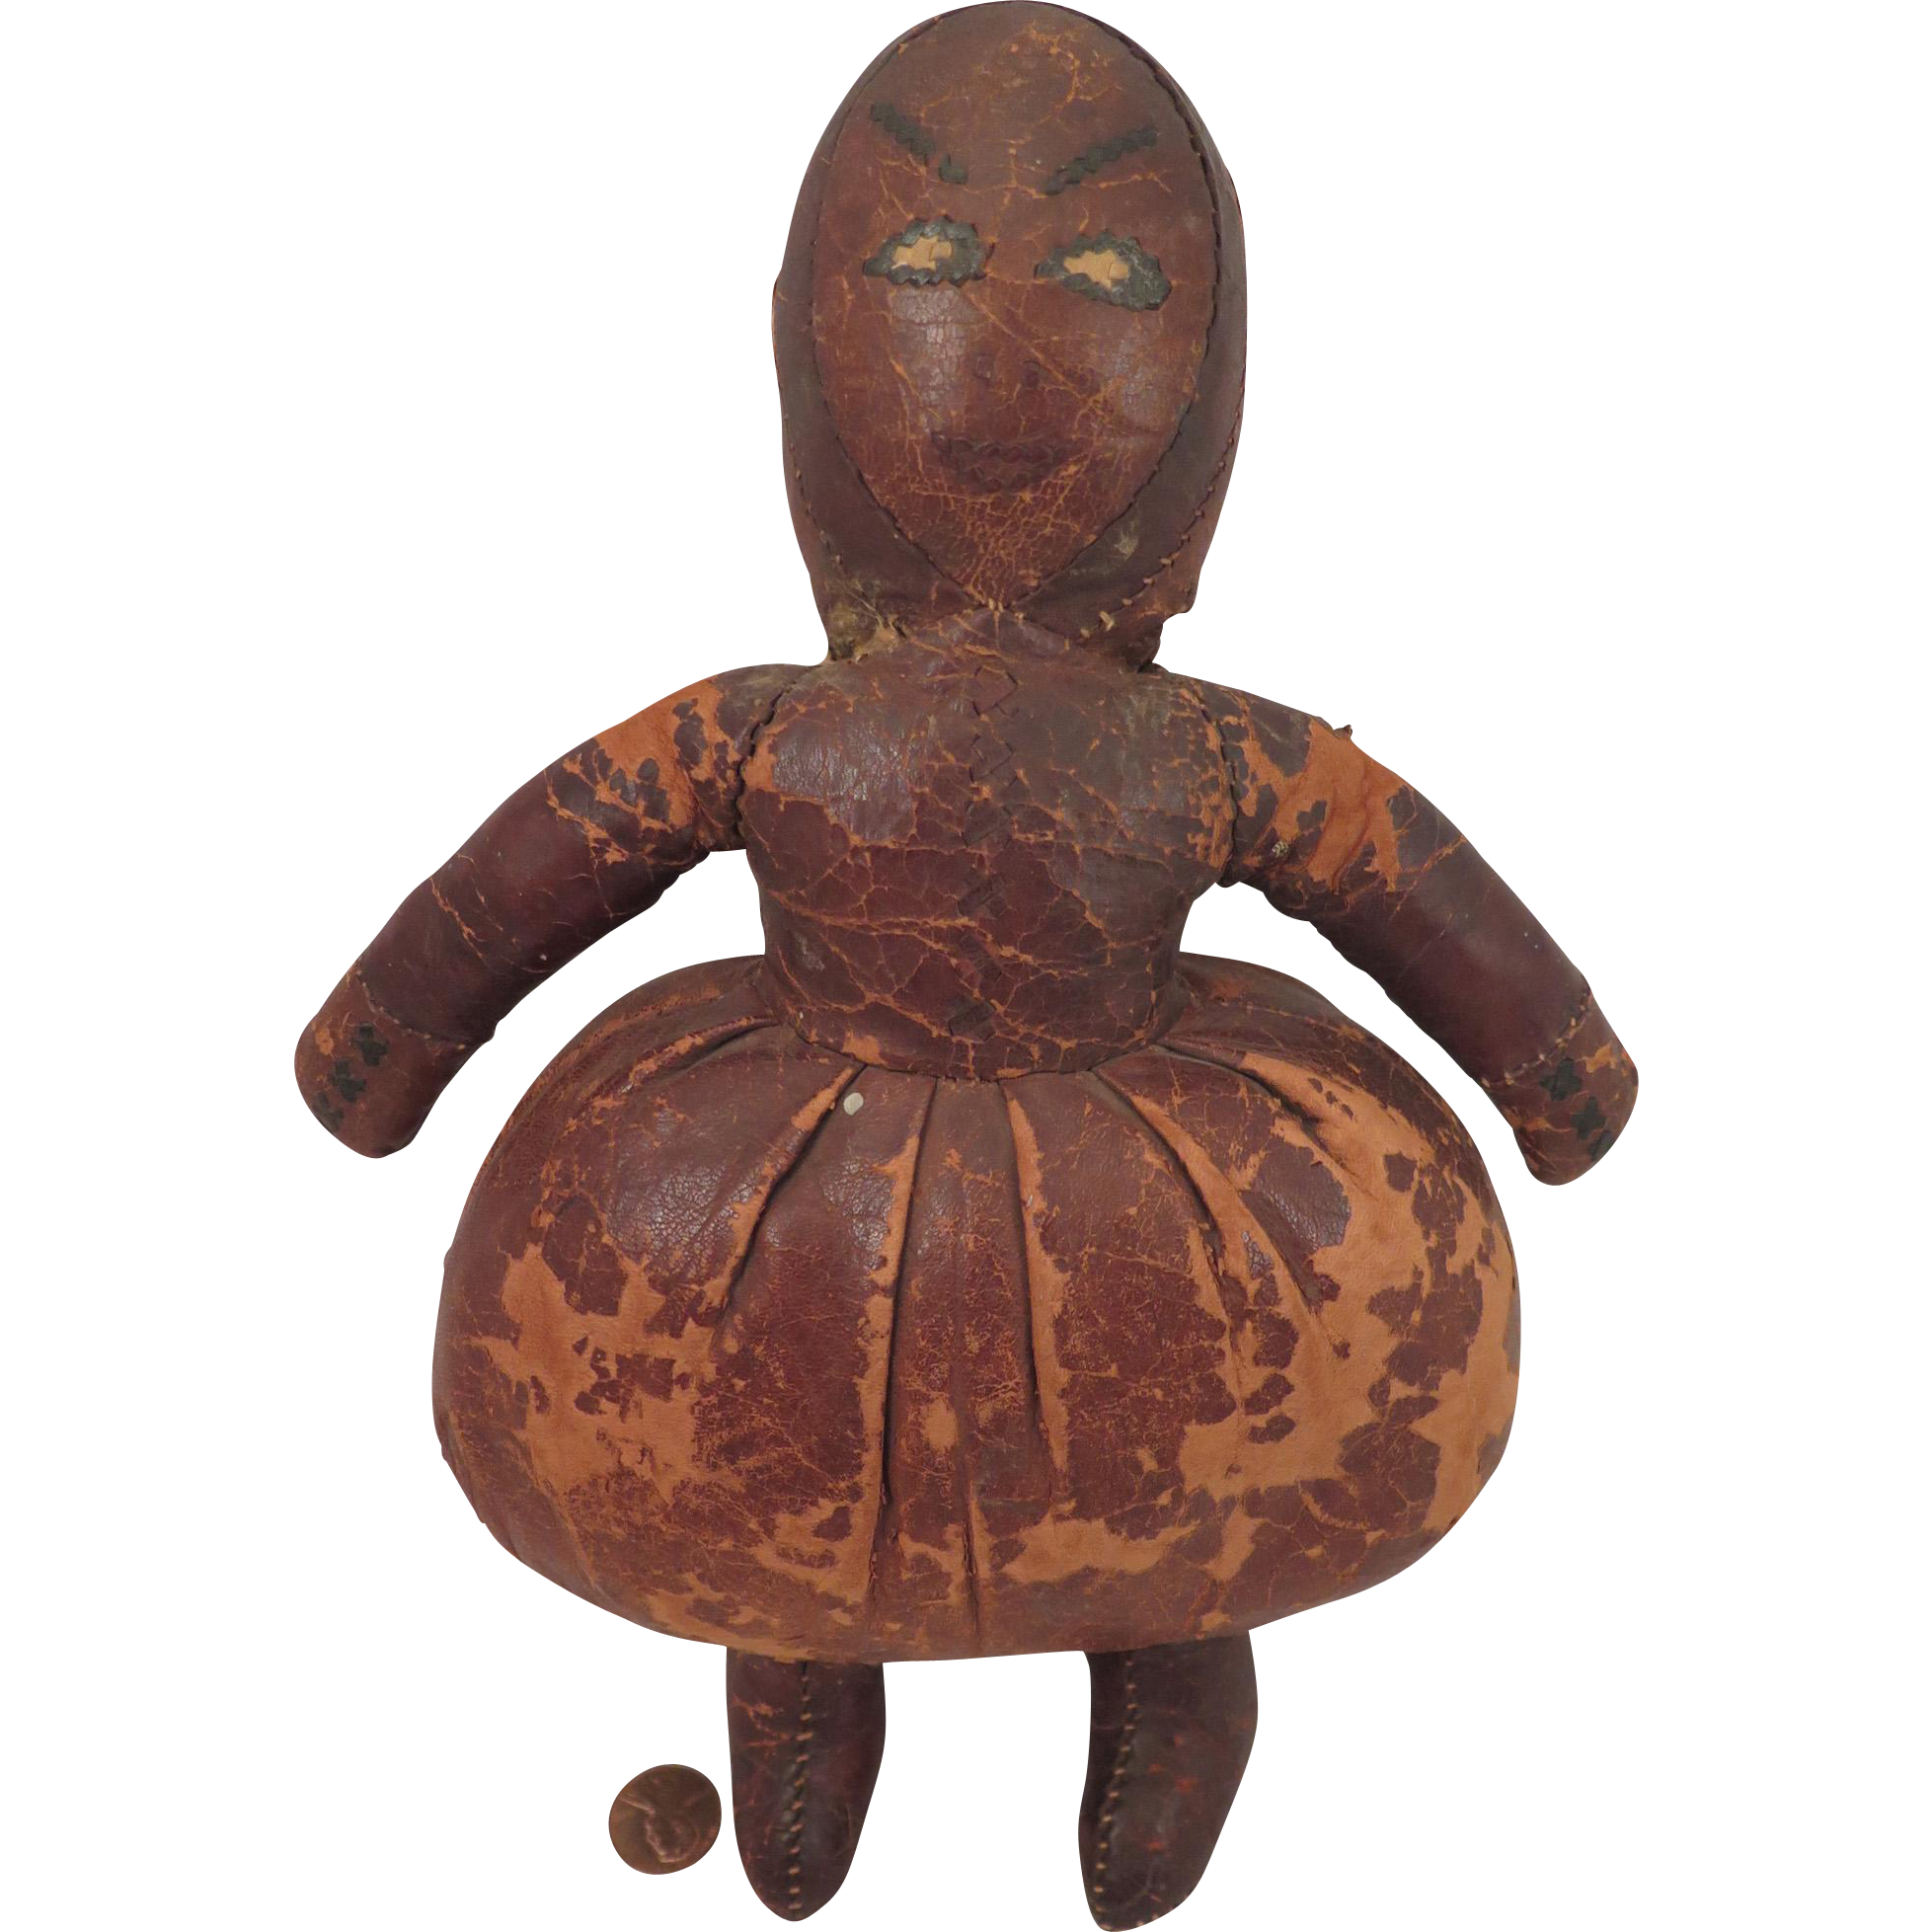 Antique Leather Doll 11 inches